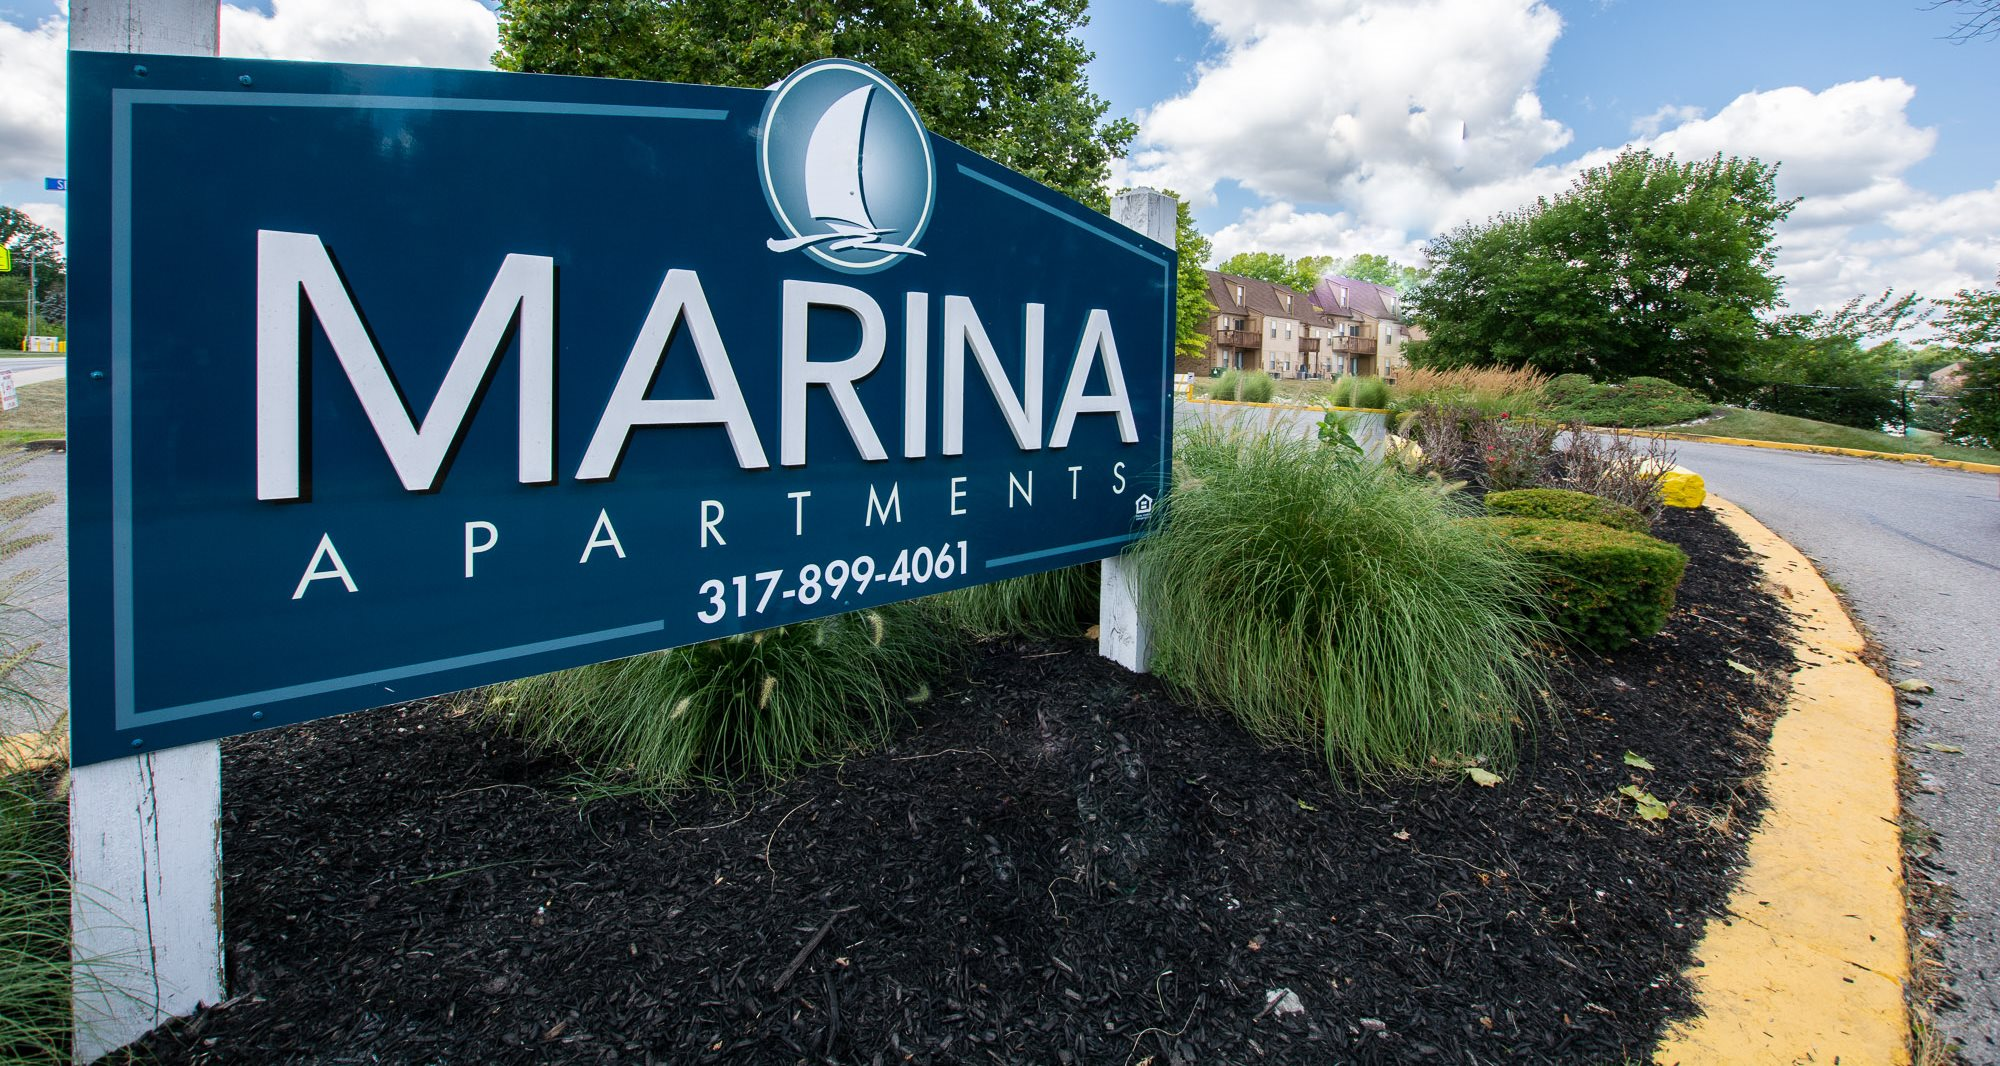 Well Equipped Apartment at Lake Marina Apartments, Indiana, 46229